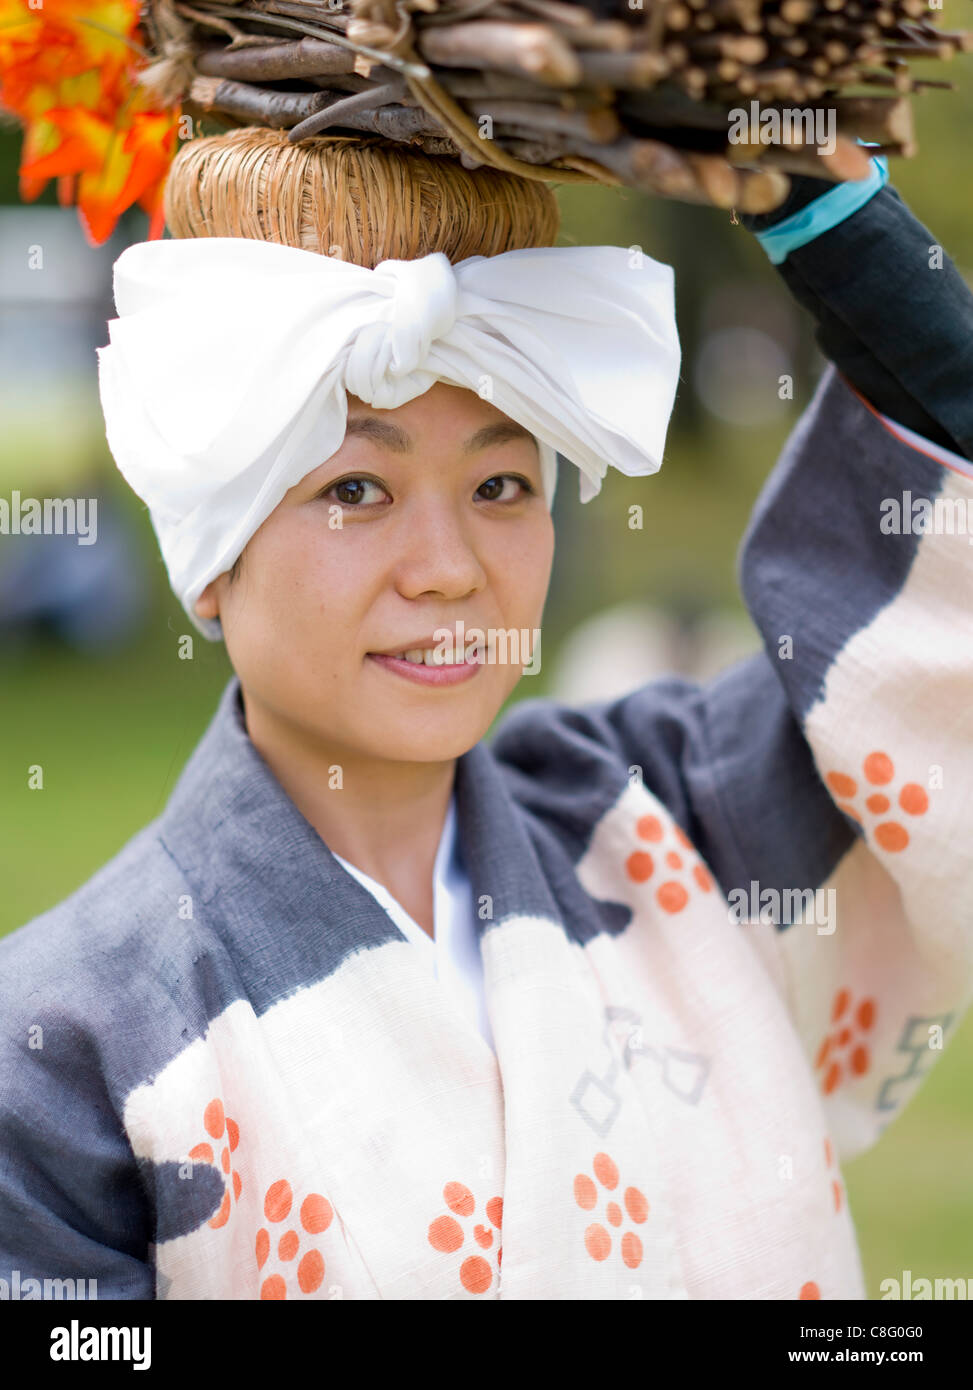 Imperial Palace, Kyoto, Japan. 23/10/2011  Participant in Kyoto's Jidai Matsuri (Festival of Ages). Delayed - Stock Image